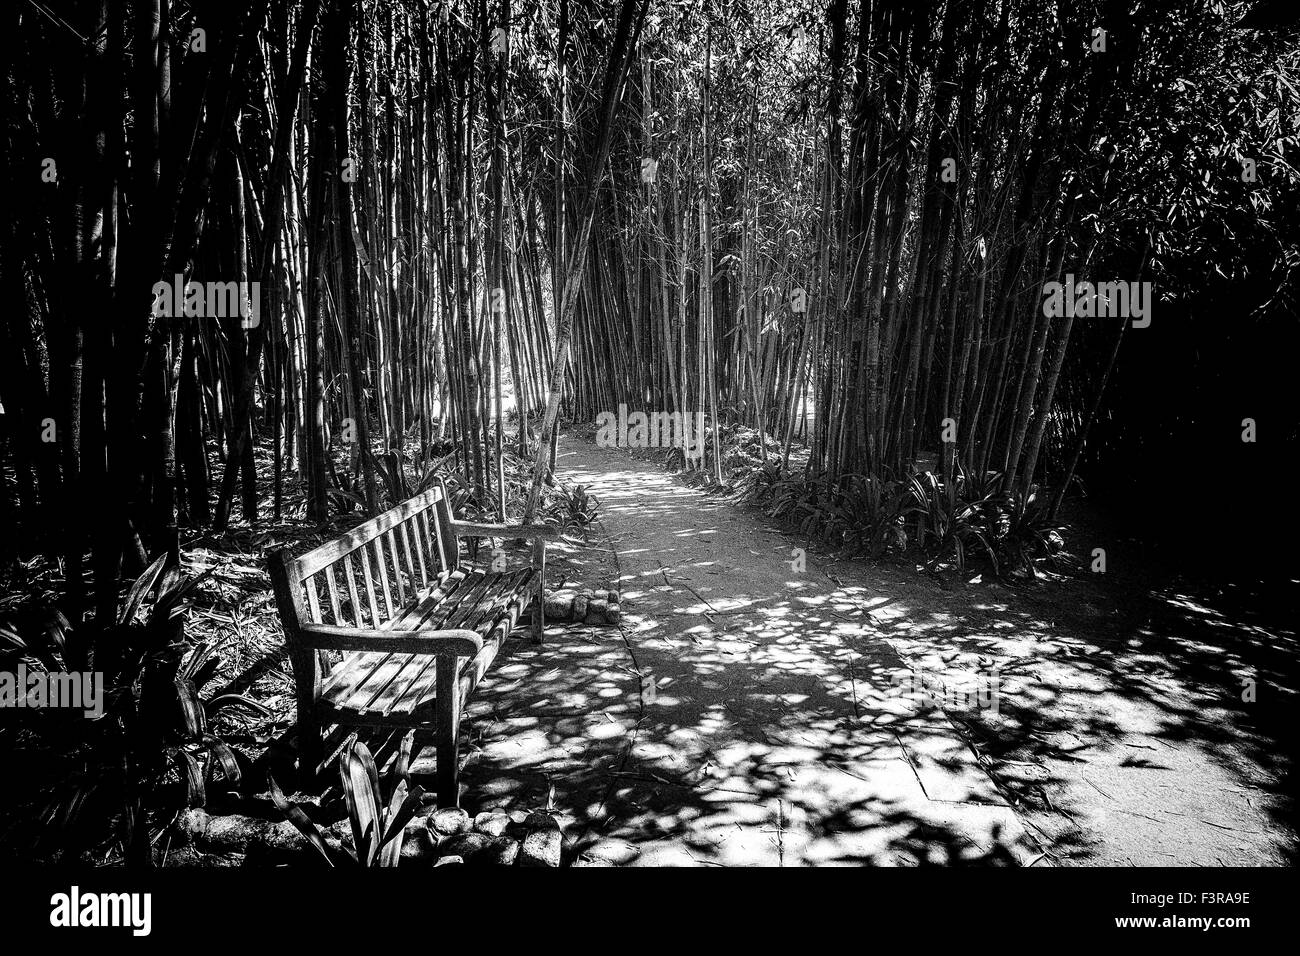 A bench amongst a forest of bamboo on the grounds of the Huntington Library, San Marino, California, U.S.A. - Stock Image